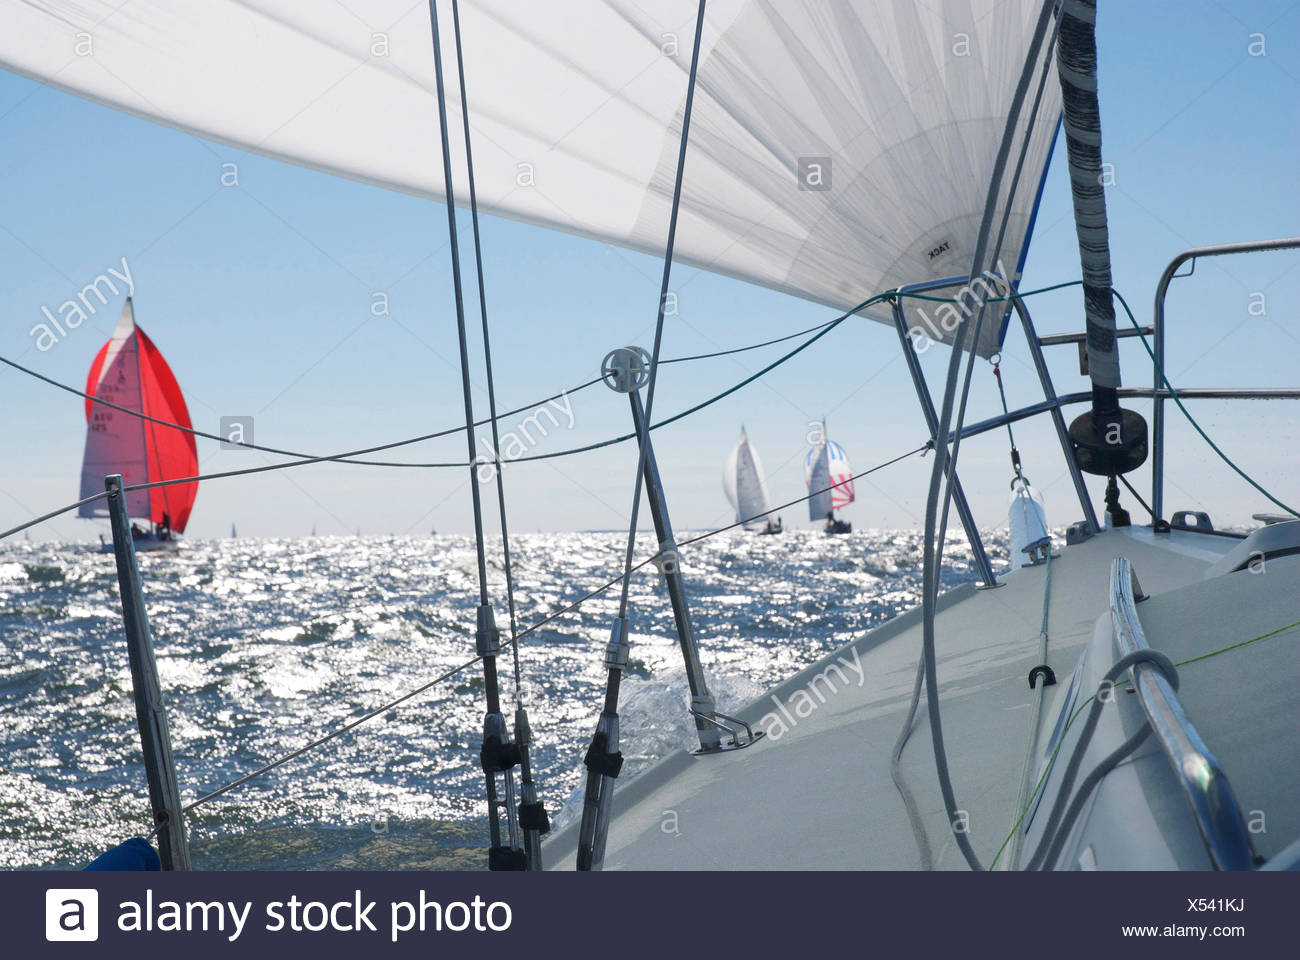 A spinnaker flying on a J/105 raceboat during a regatta in Annapolis. - Stock Image